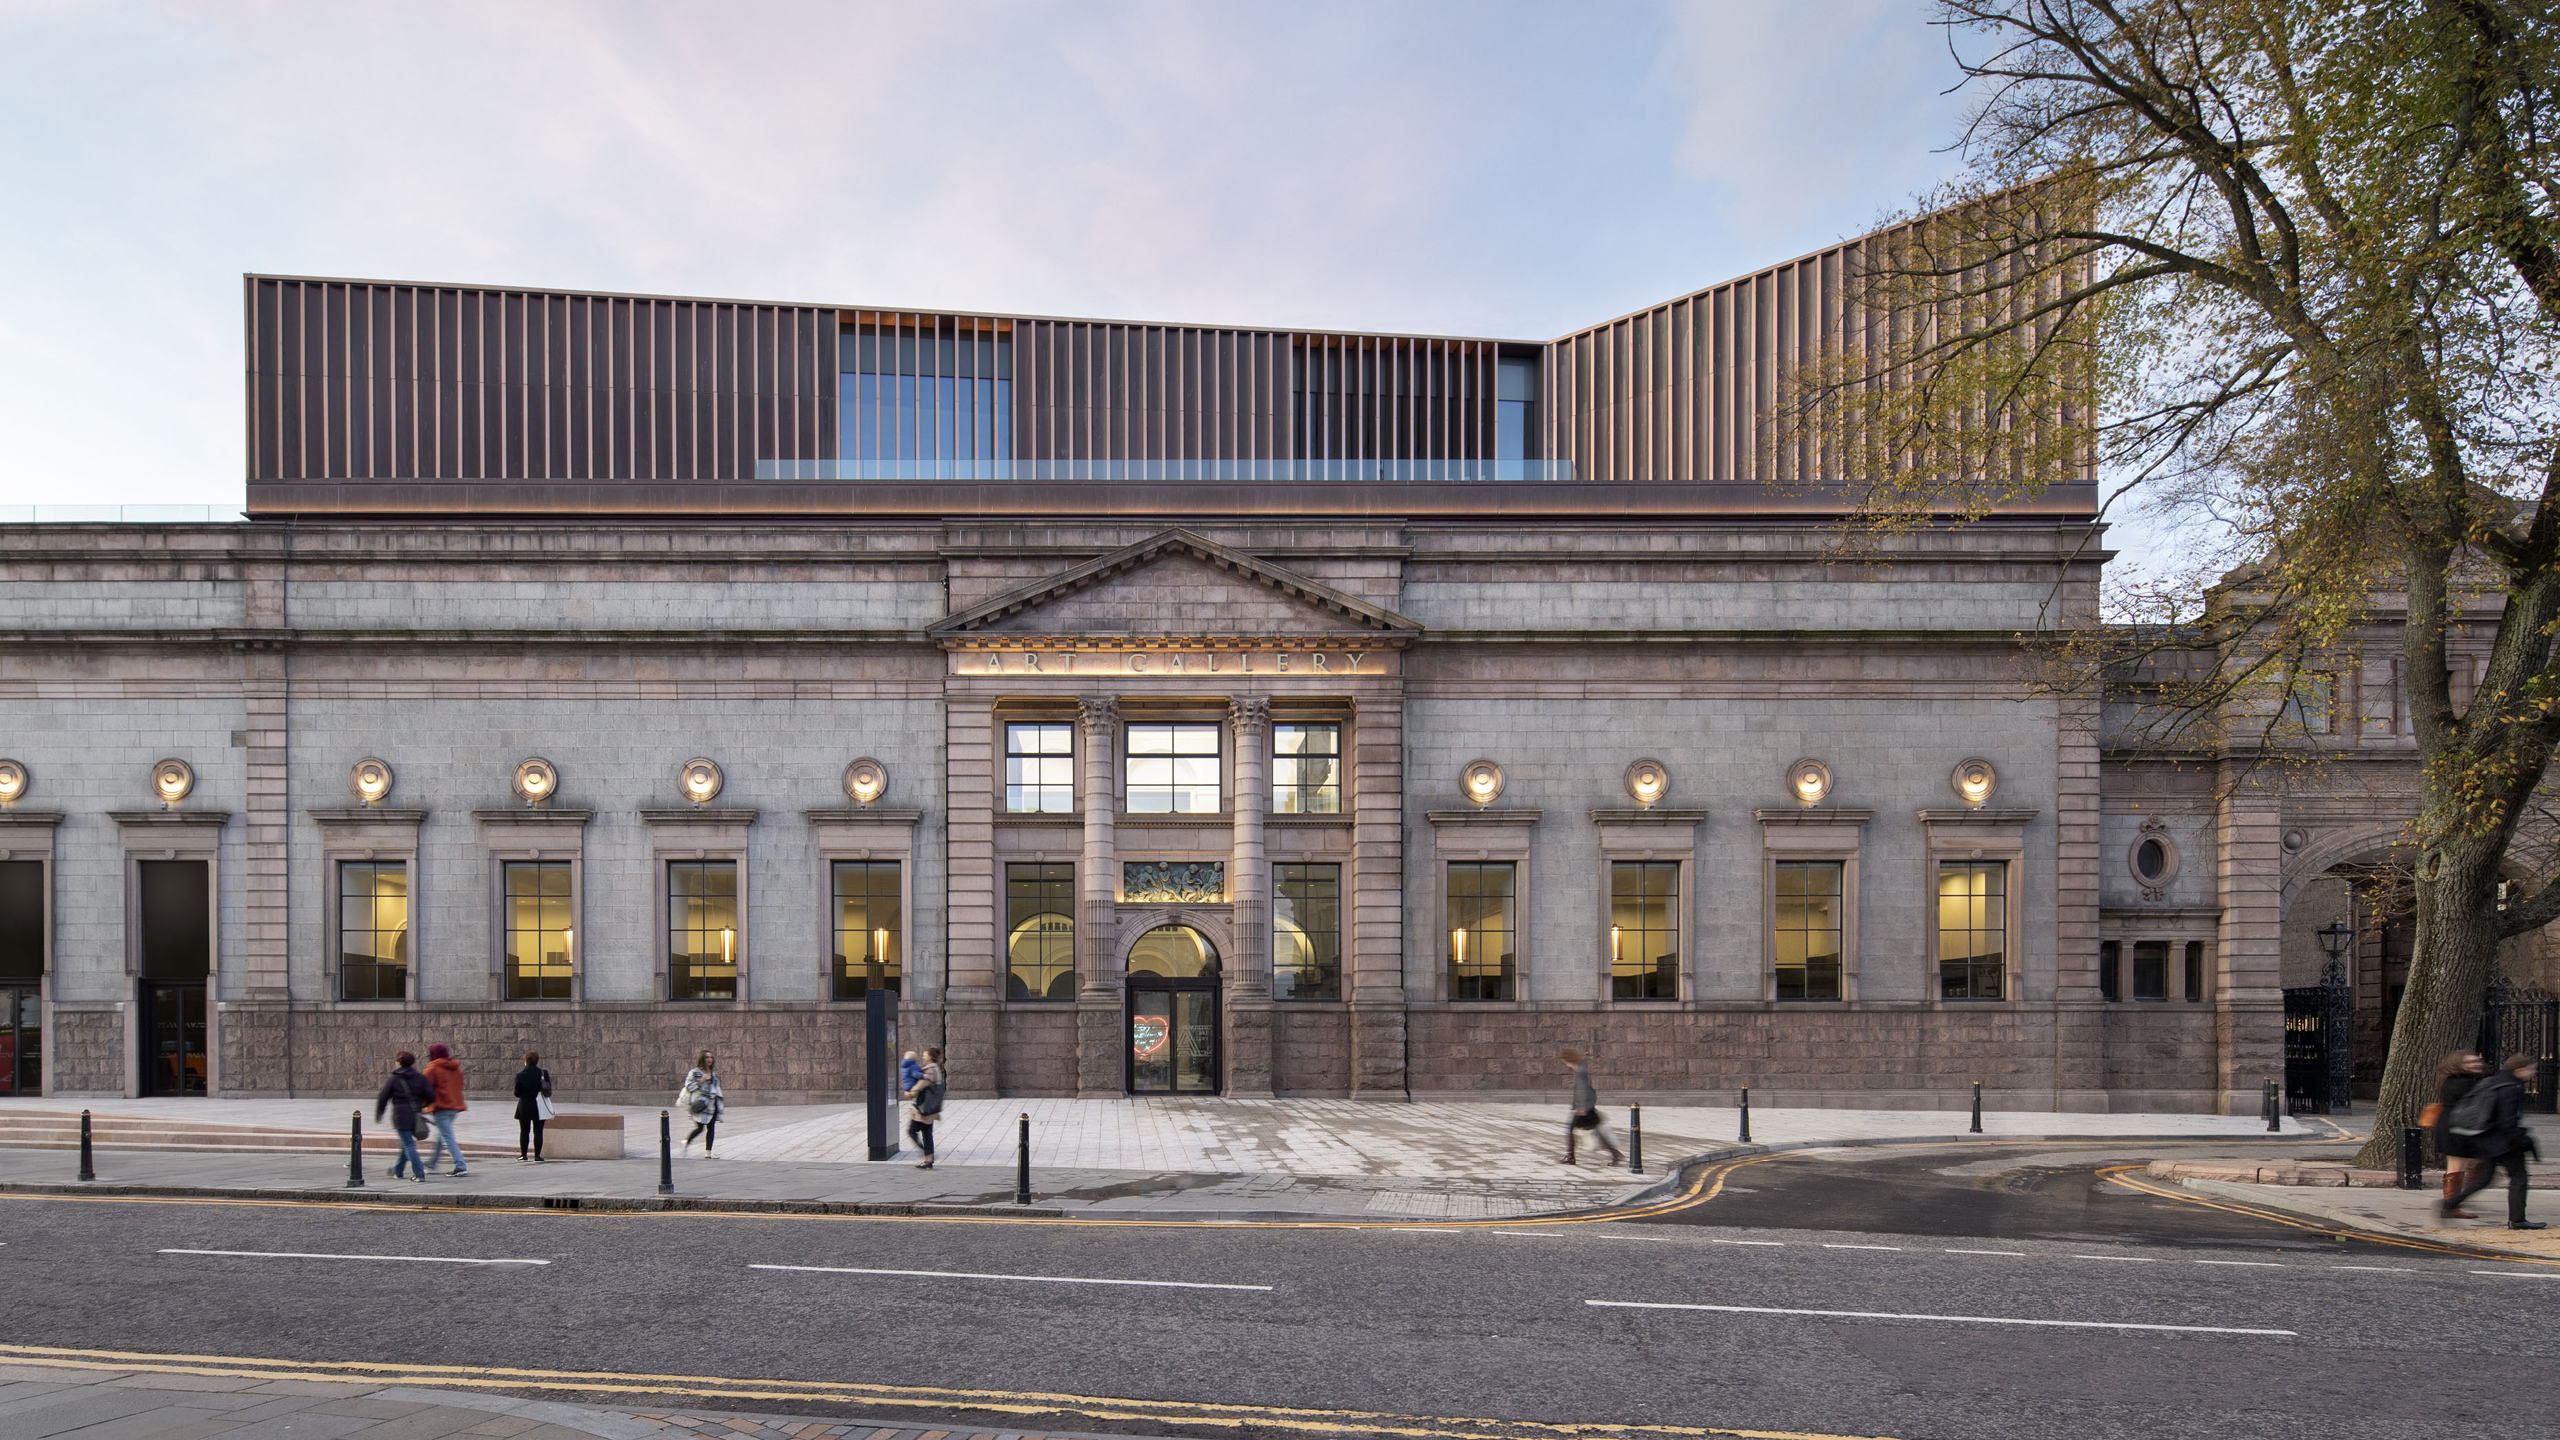 Main facades of rejuvenated Aberdeen Art Gallery located in Scotland. The copper facades are clad form Nordic Brown copper by Nordic Copper from Aurubis Finland.